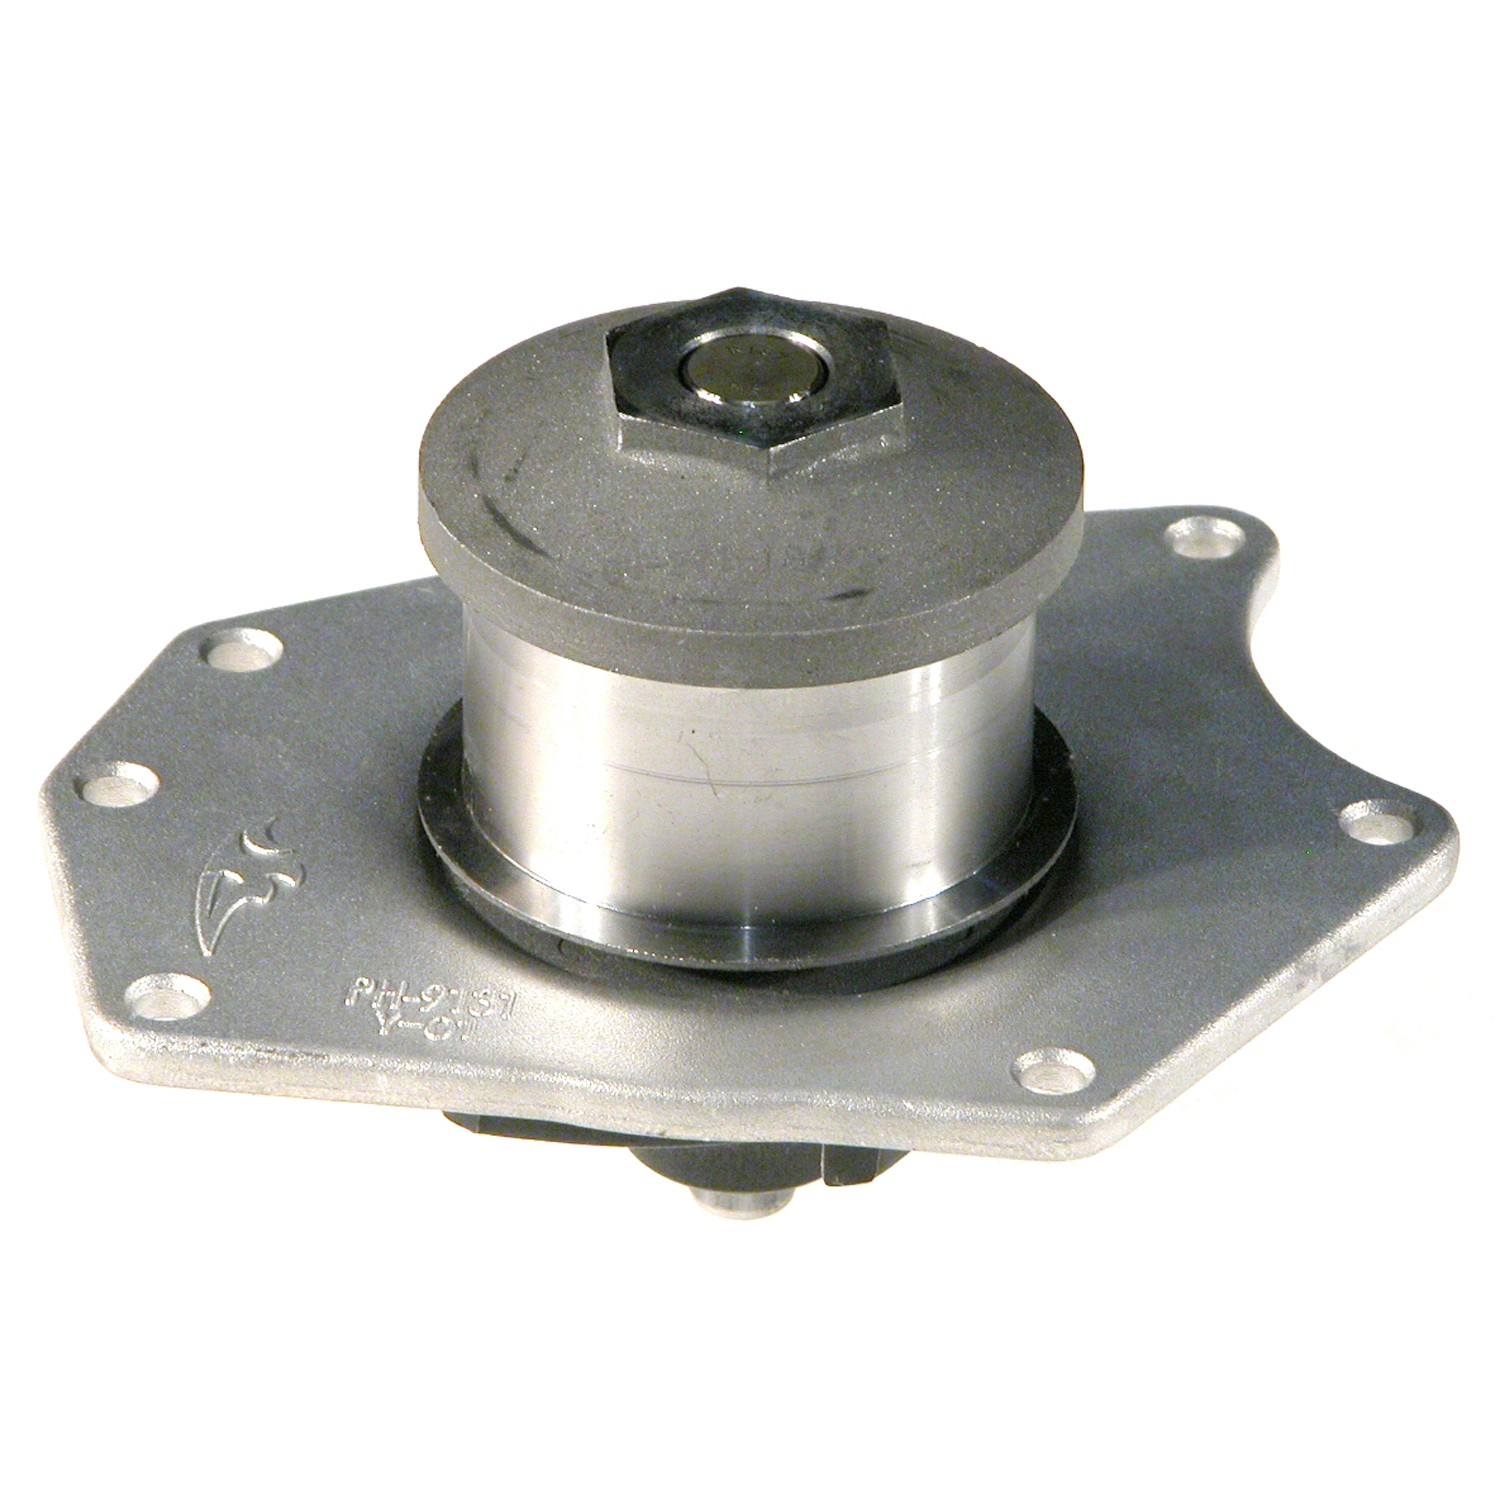 hight resolution of  1999 chrysler 300m engine water pump aw aw7162